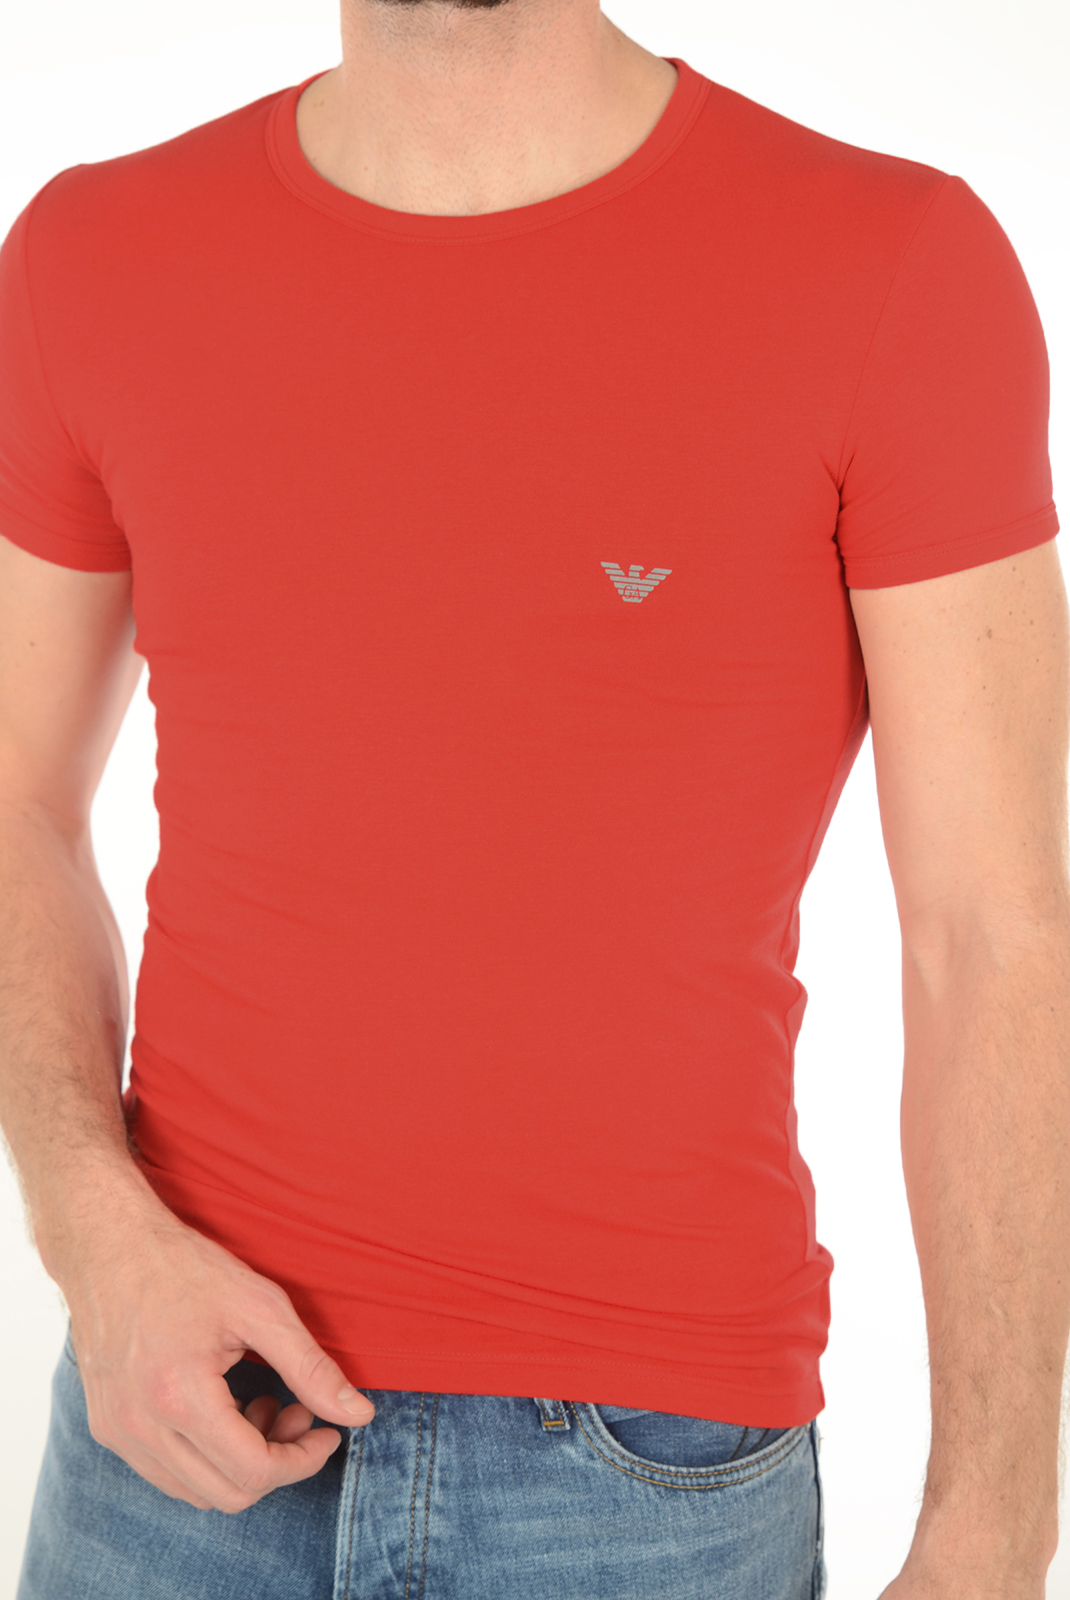 Tee-shirts manches courtes  Emporio armani 111035 6A725 074 ROUGE